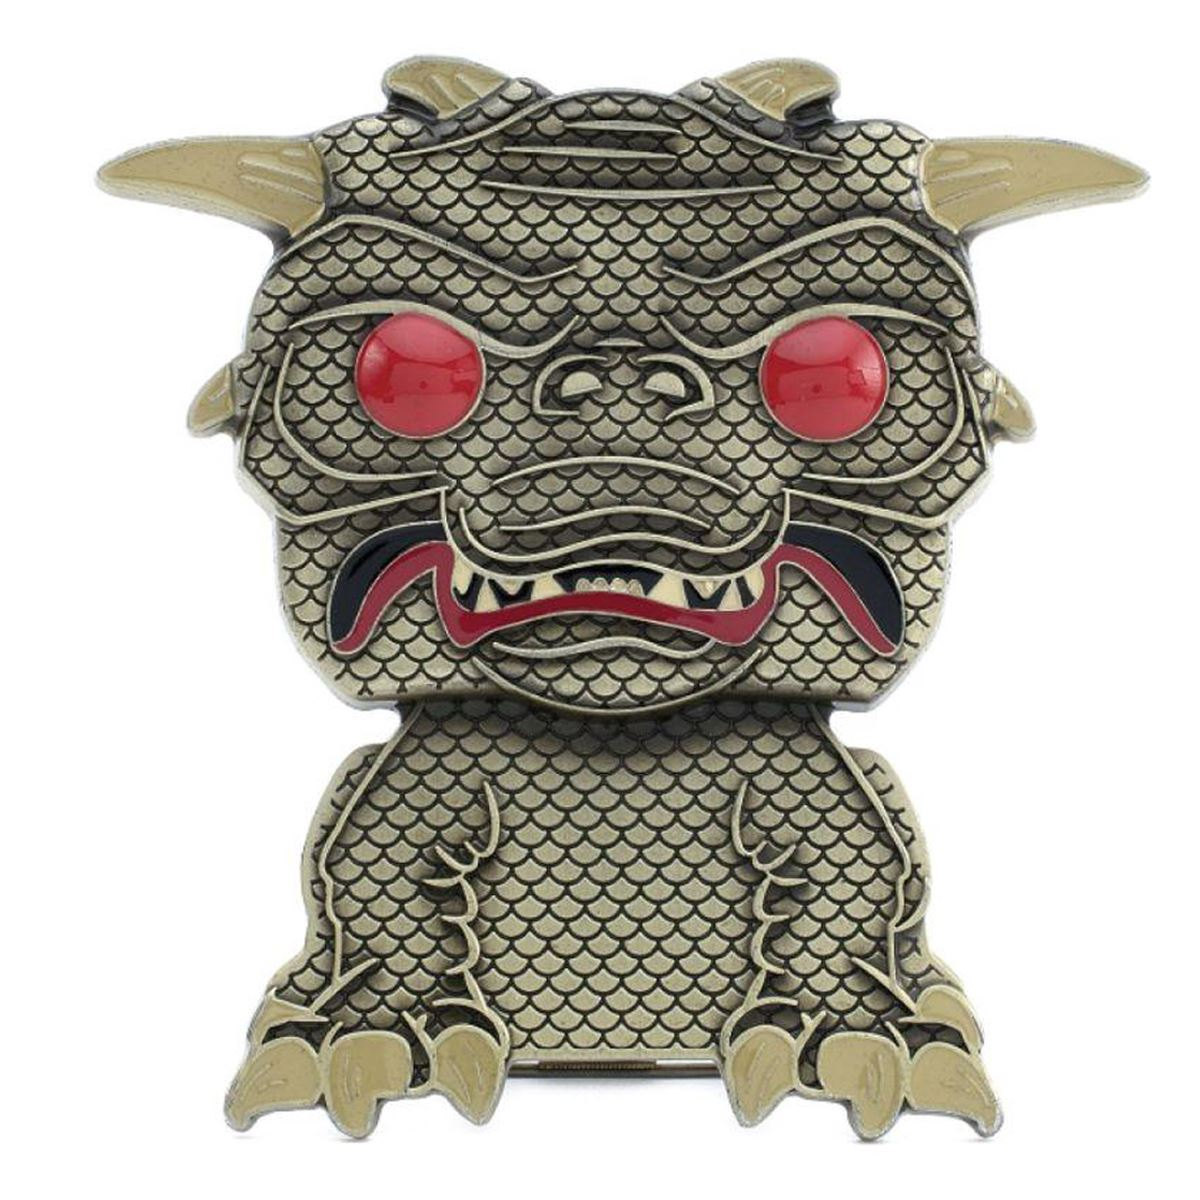 Zuul Ghostbusters Funko POP! Pin [PRE-ORDER] Pop! Pin Funko